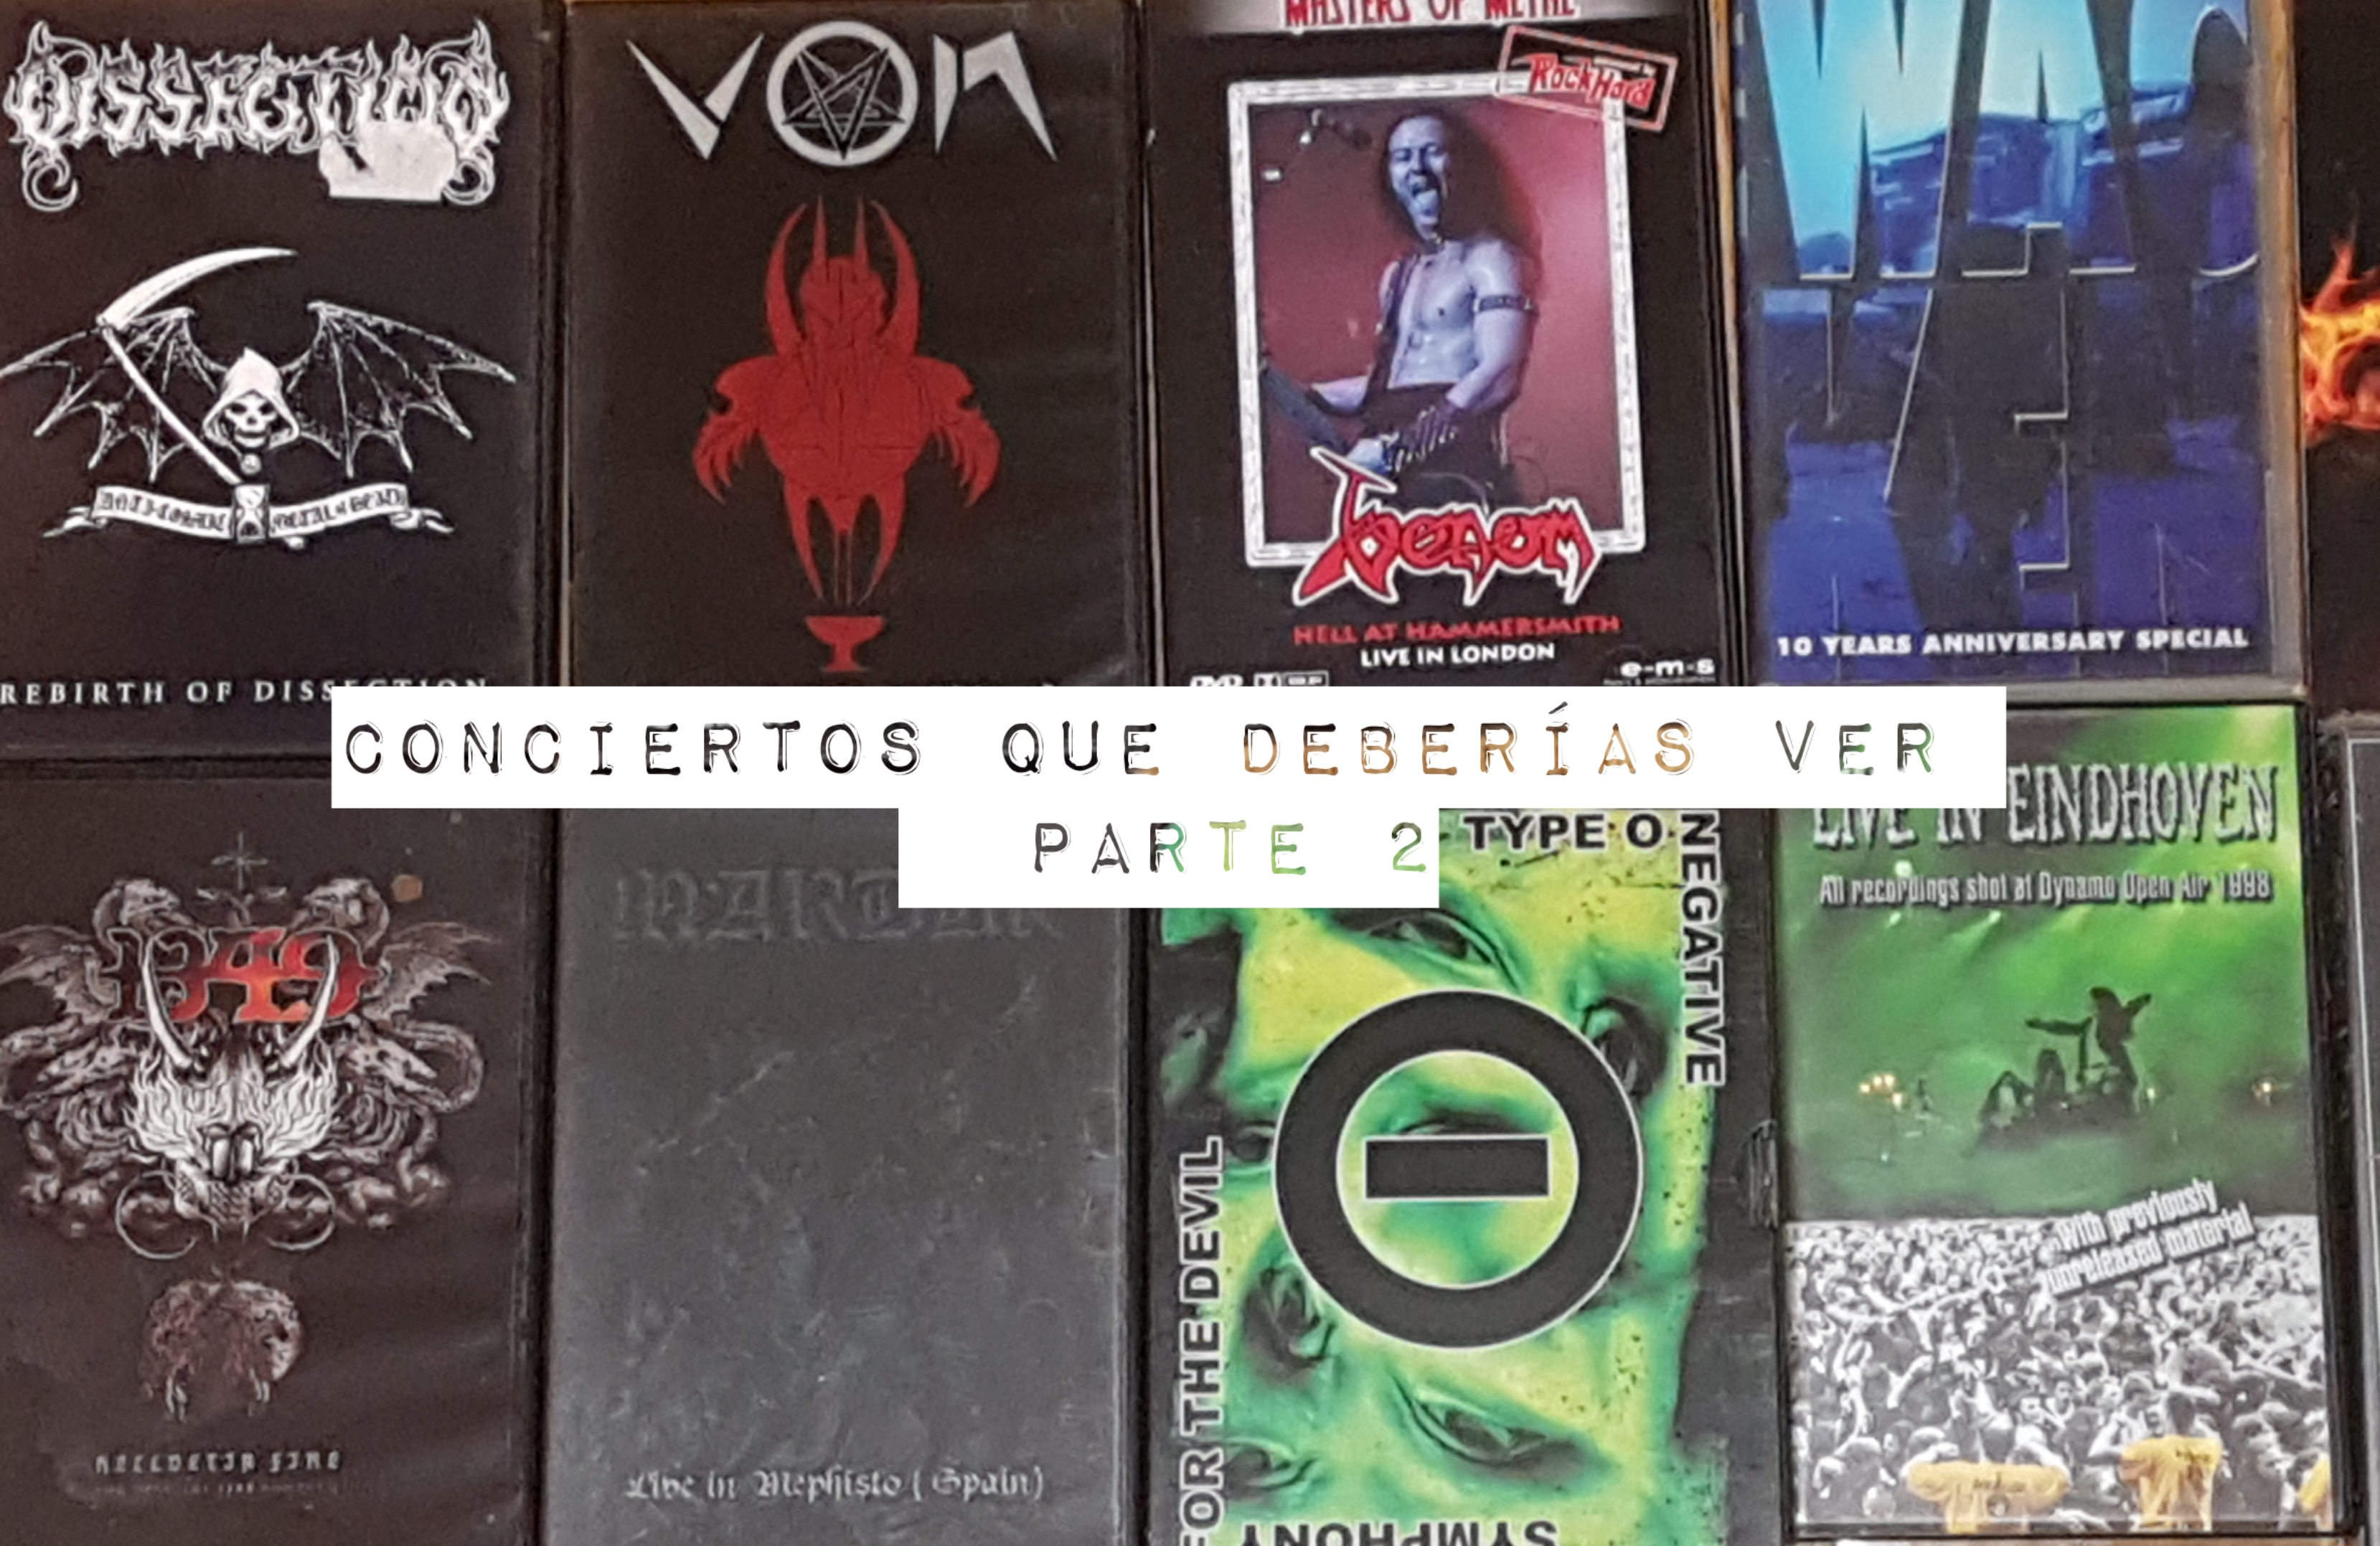 Foto DVD y videos de conciertos. Eduard Tuset